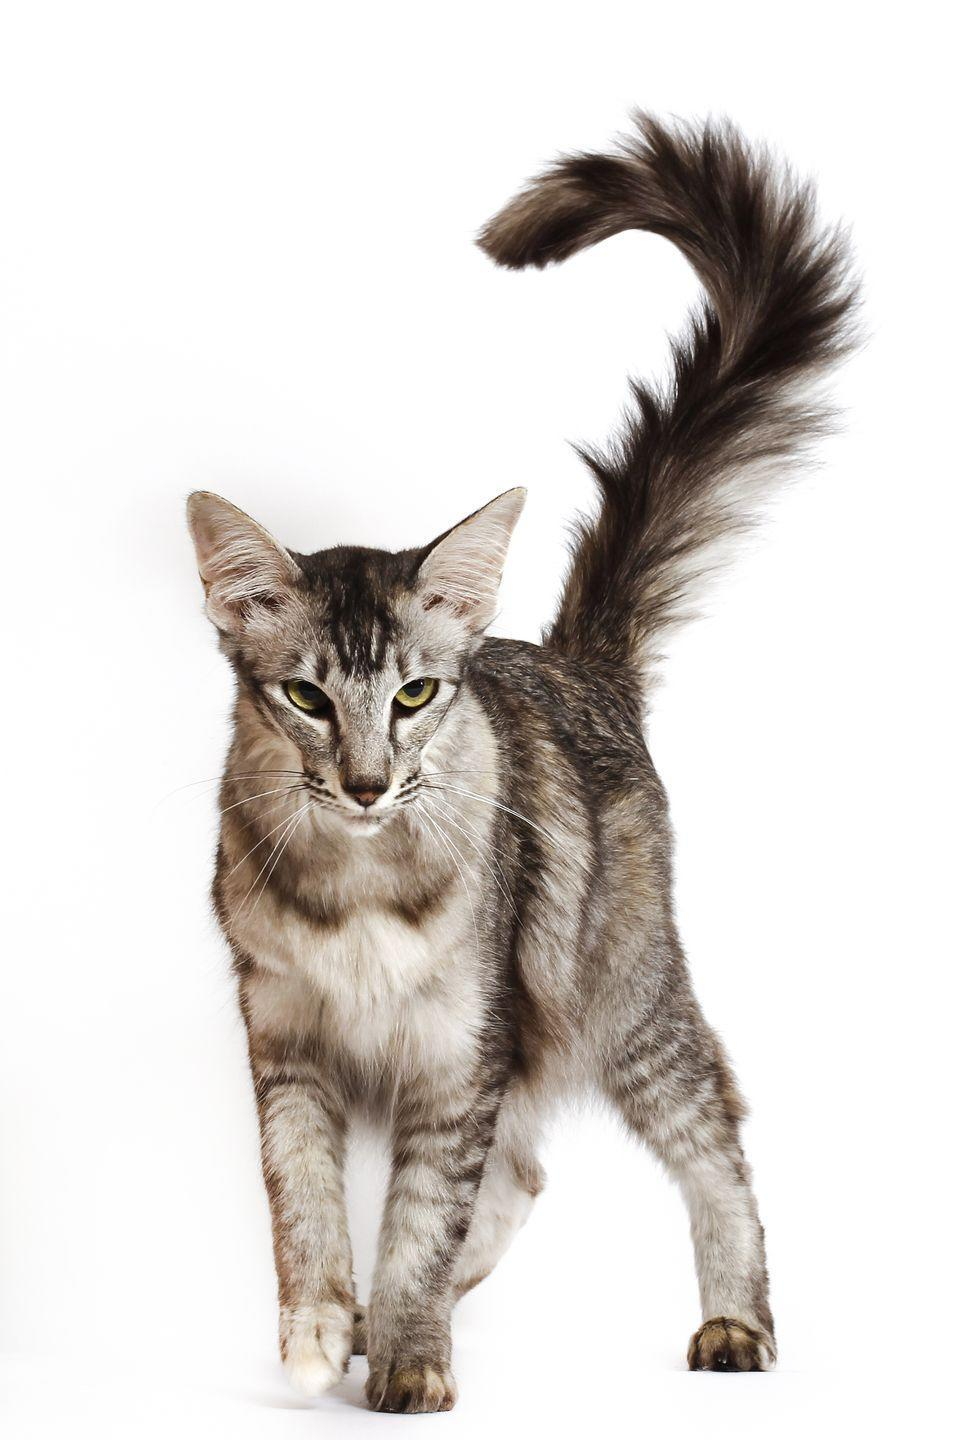 "<p>The Oriental Longhair <a href=""https://www.purina.co.uk/cats/cat-breeds/library/oriental-long-hair"" rel=""nofollow noopener"" target=""_blank"" data-ylk=""slk:loves company"" class=""link rapid-noclick-resp"">loves company</a>, so if you spend most of your day at work, maybe you should consider getting a pair. </p>"